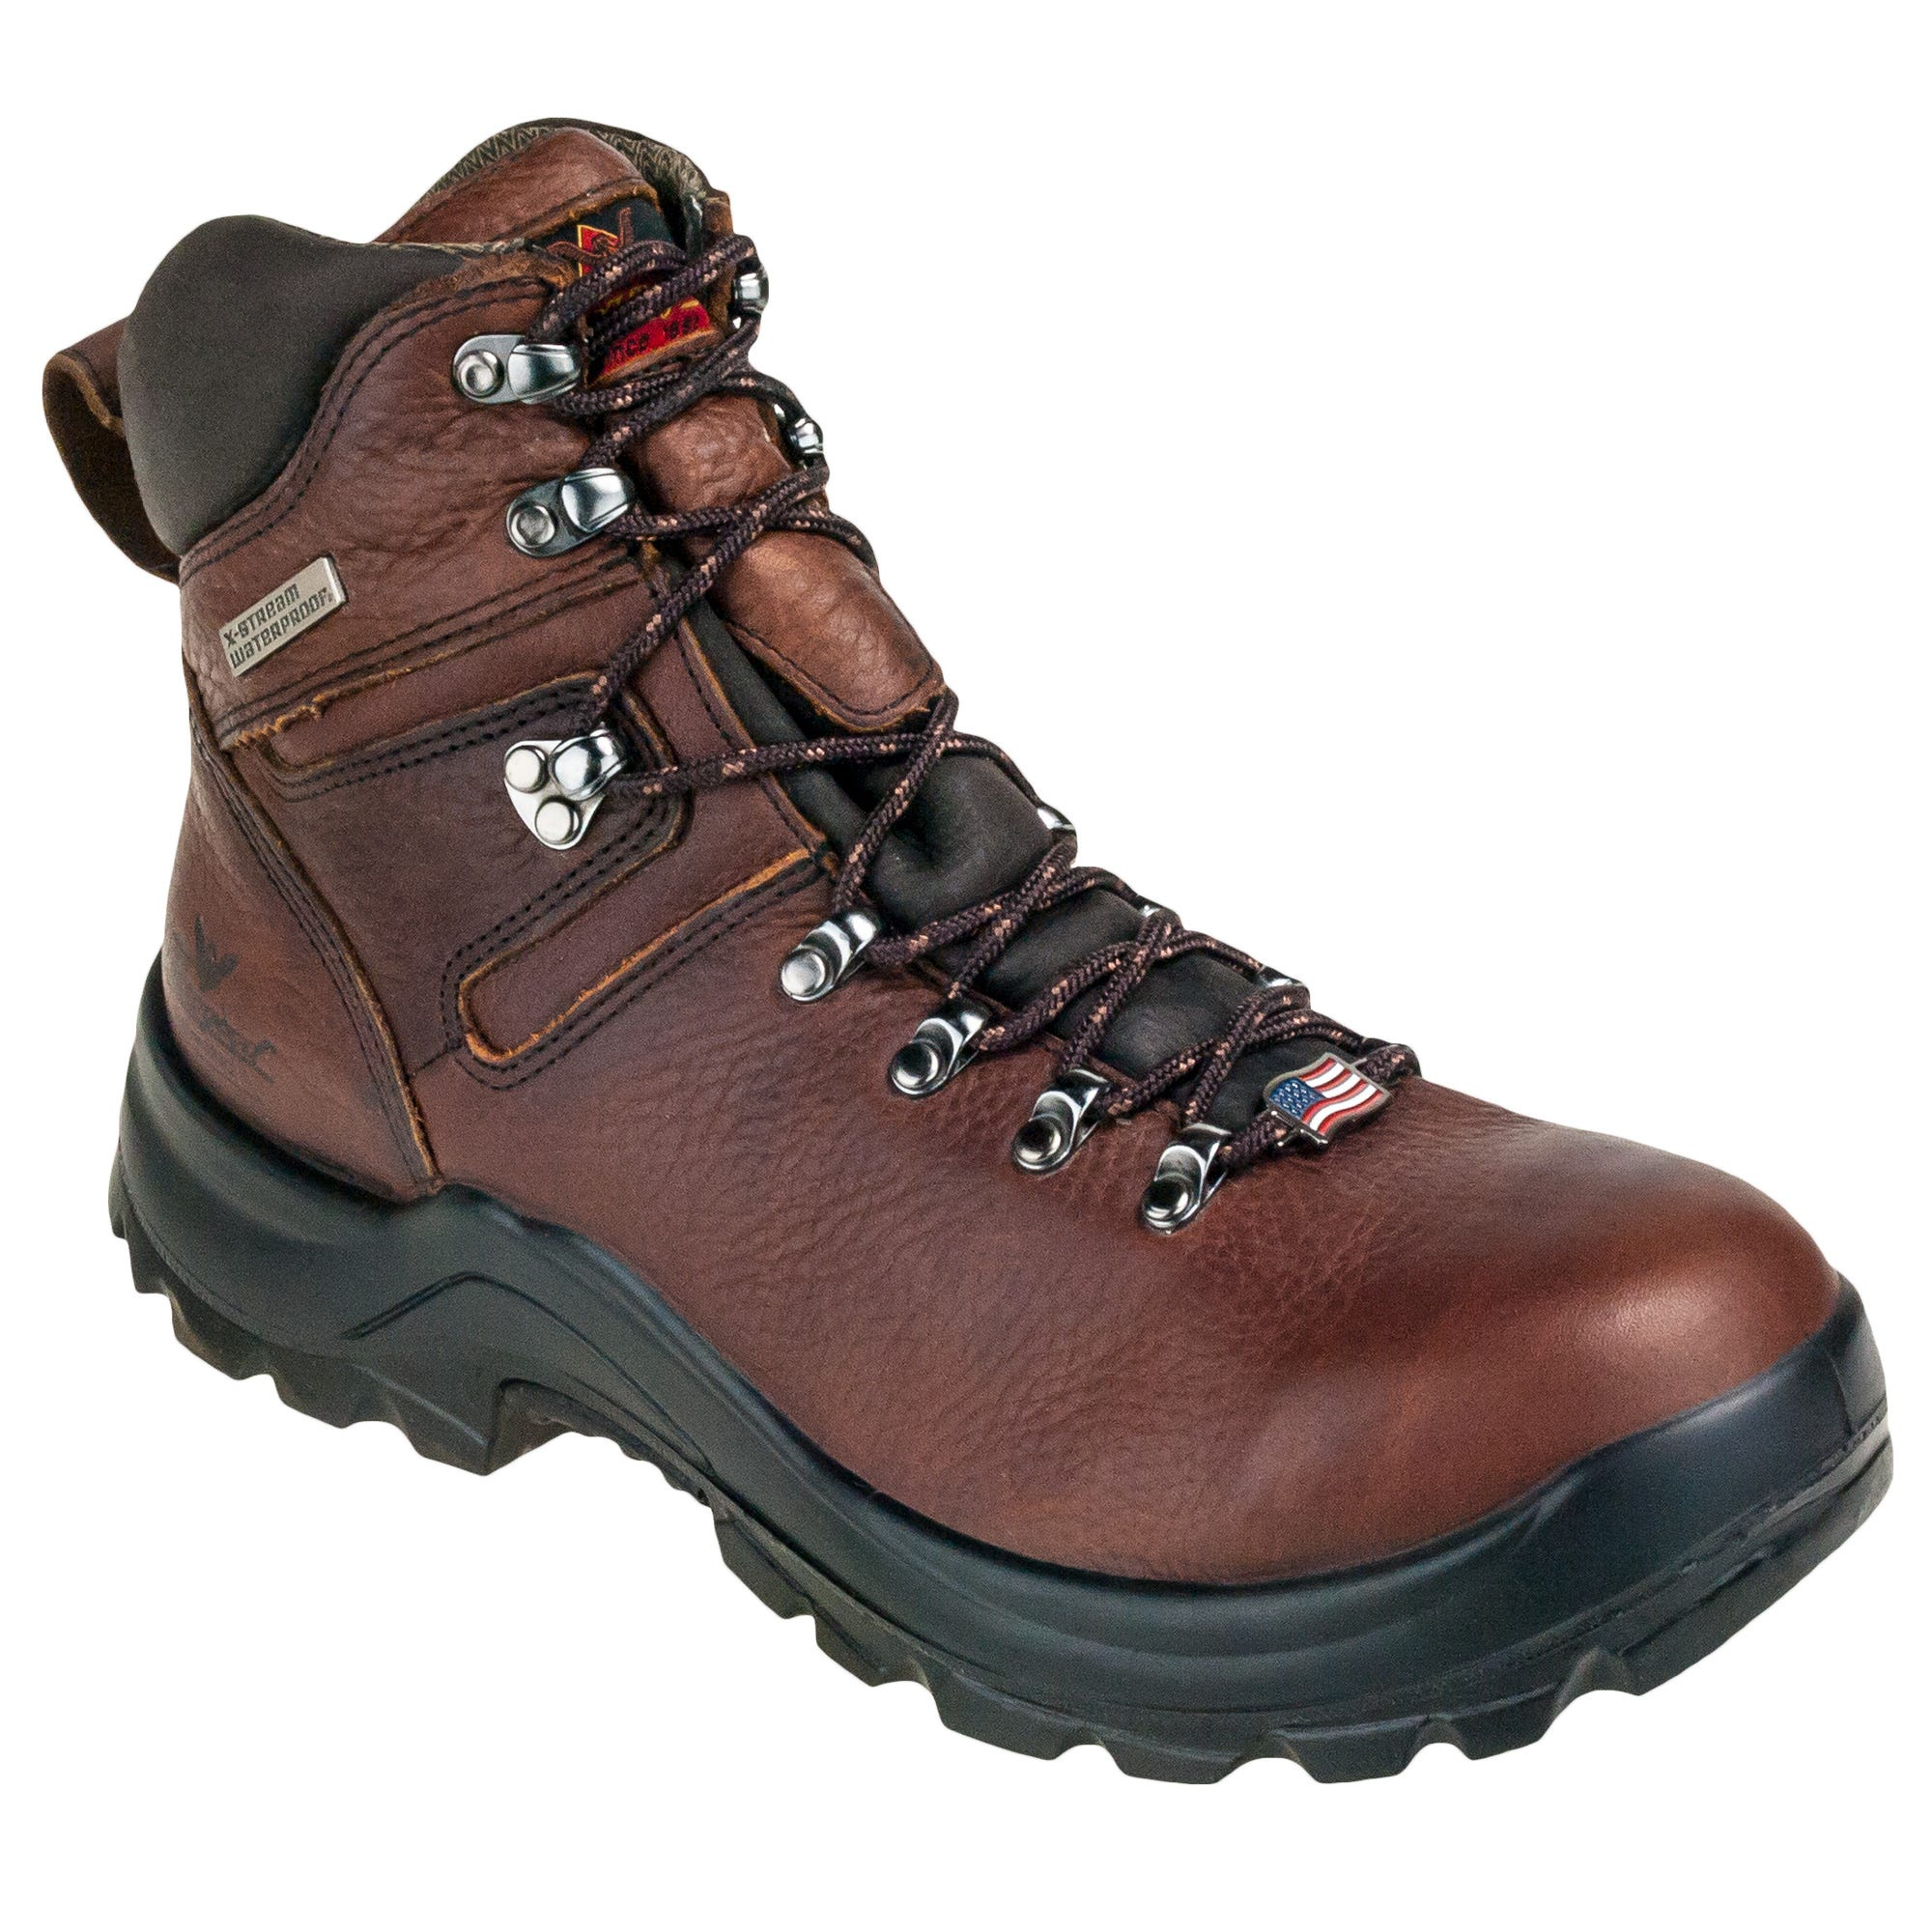 fcf0753048d Thorogood Boots: USA-Made 814-3266 Men's Waterproof EH Brown Omni 6 ...